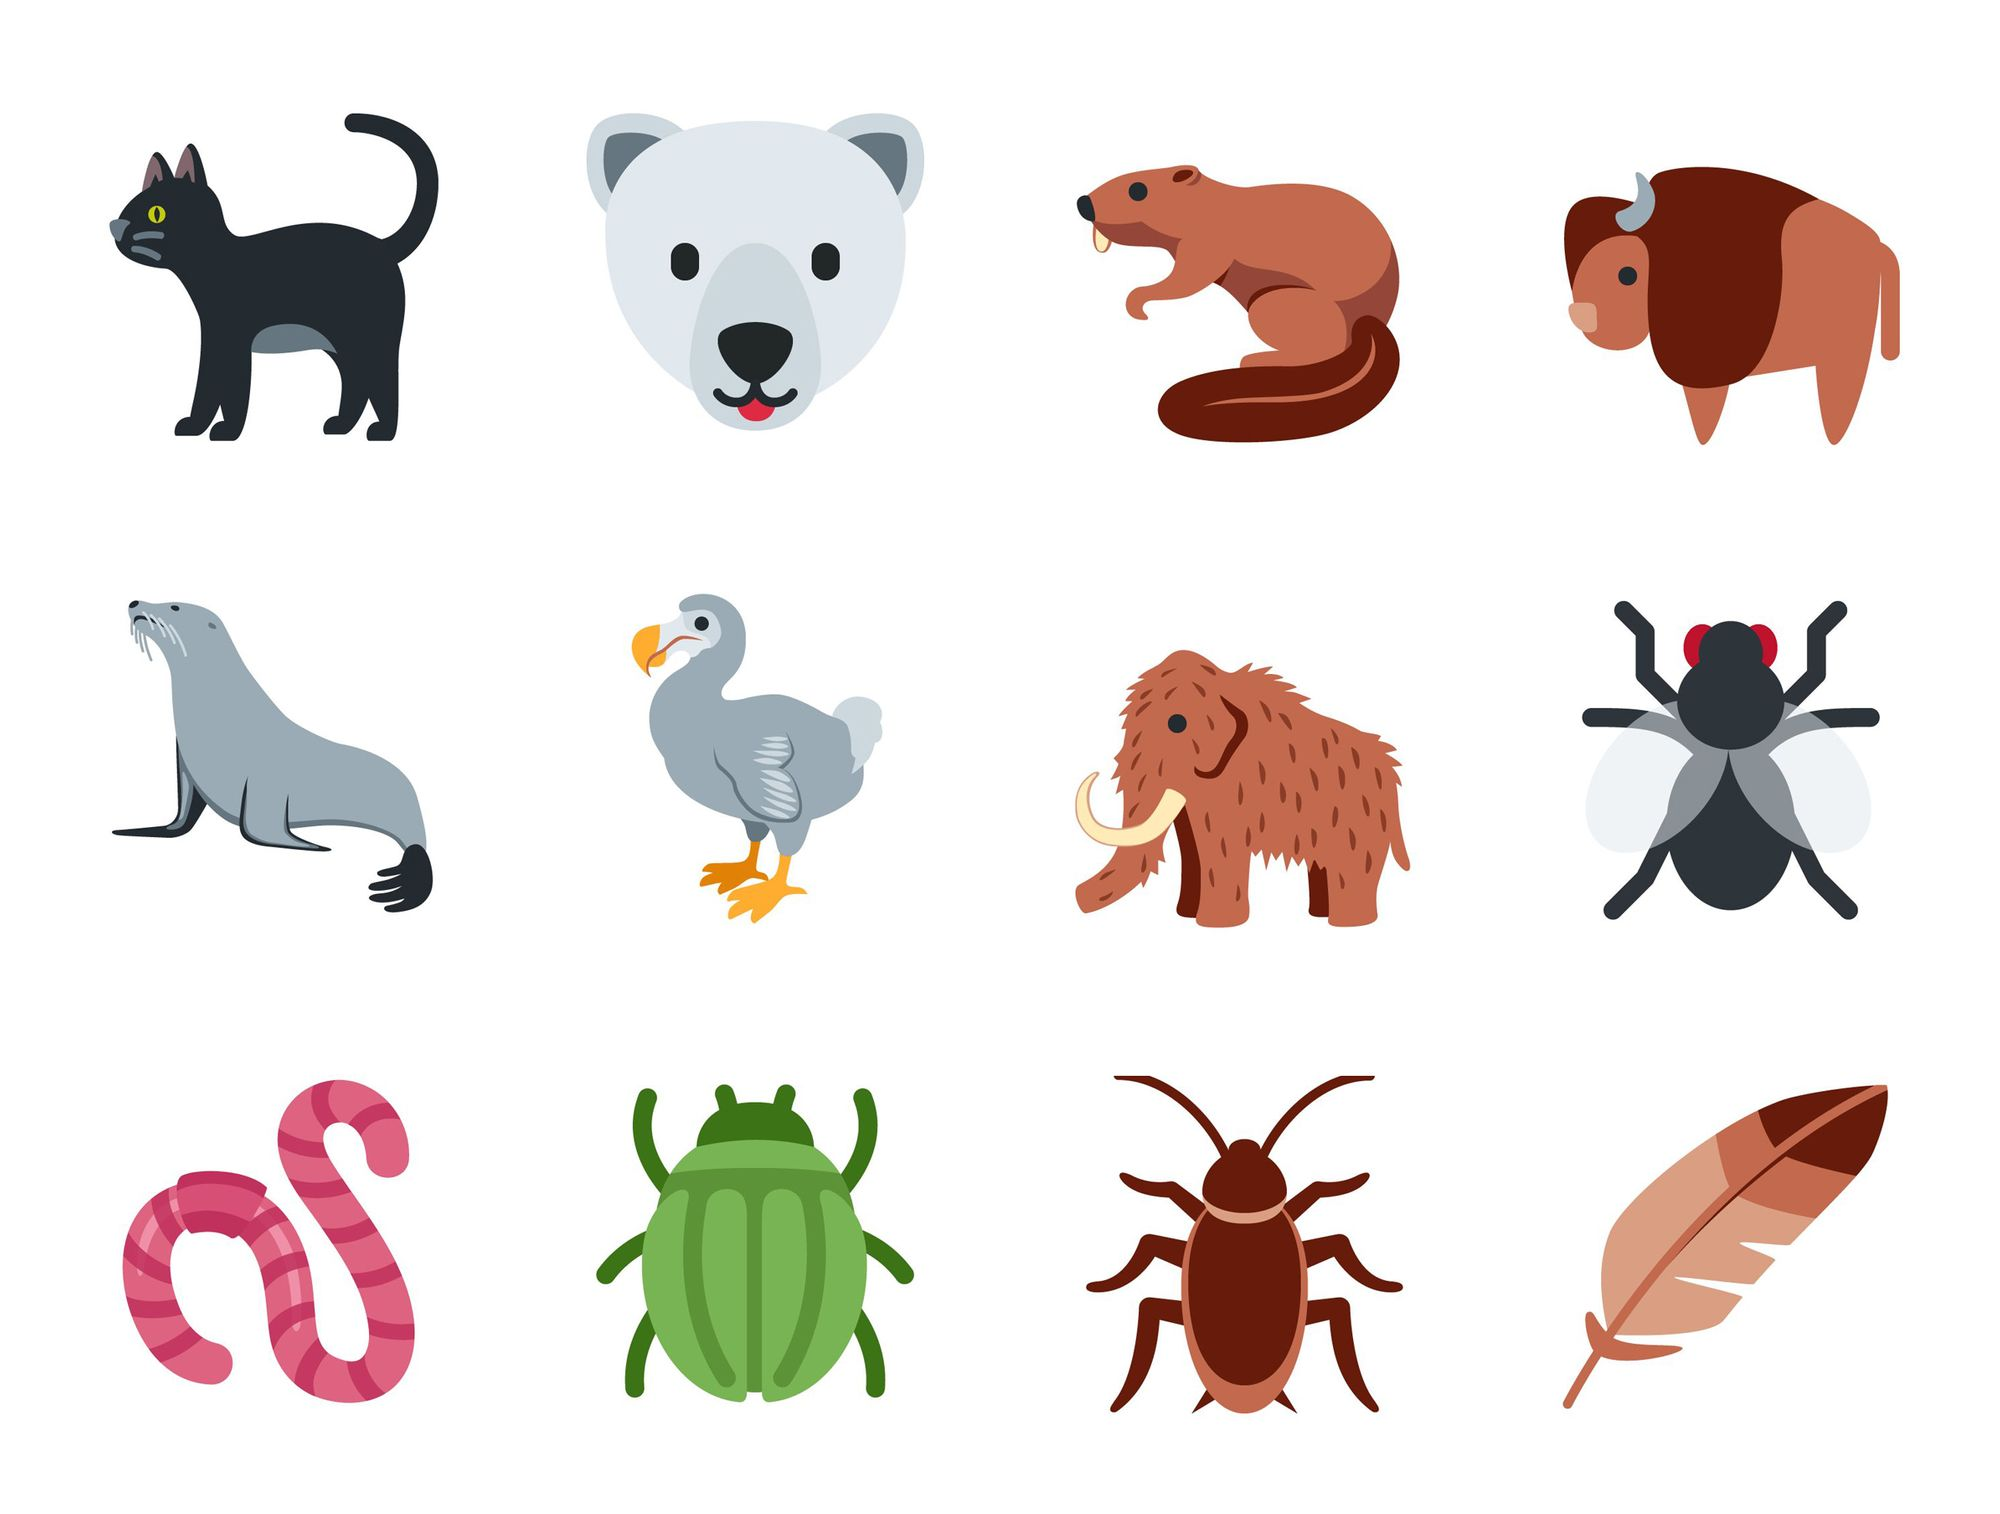 Emojipedia-Twemoji-13-Animal-Emojis-3